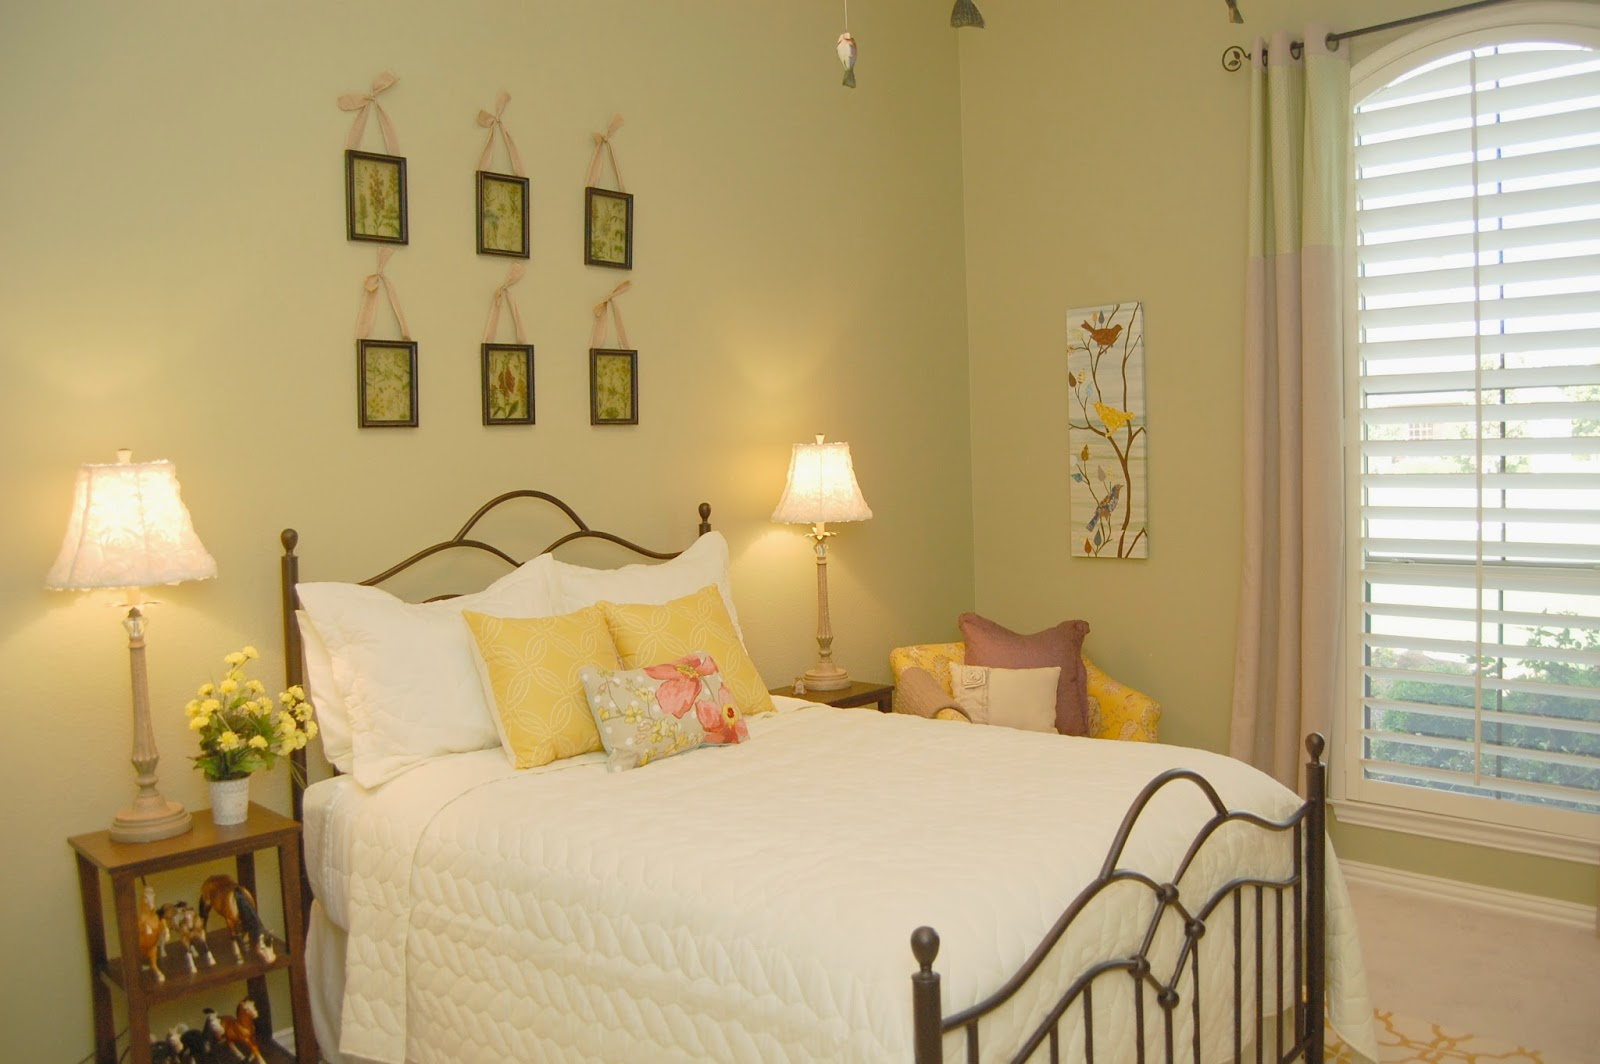 Style with wisdom girly nature inspired bedroom for Nature inspired rooms